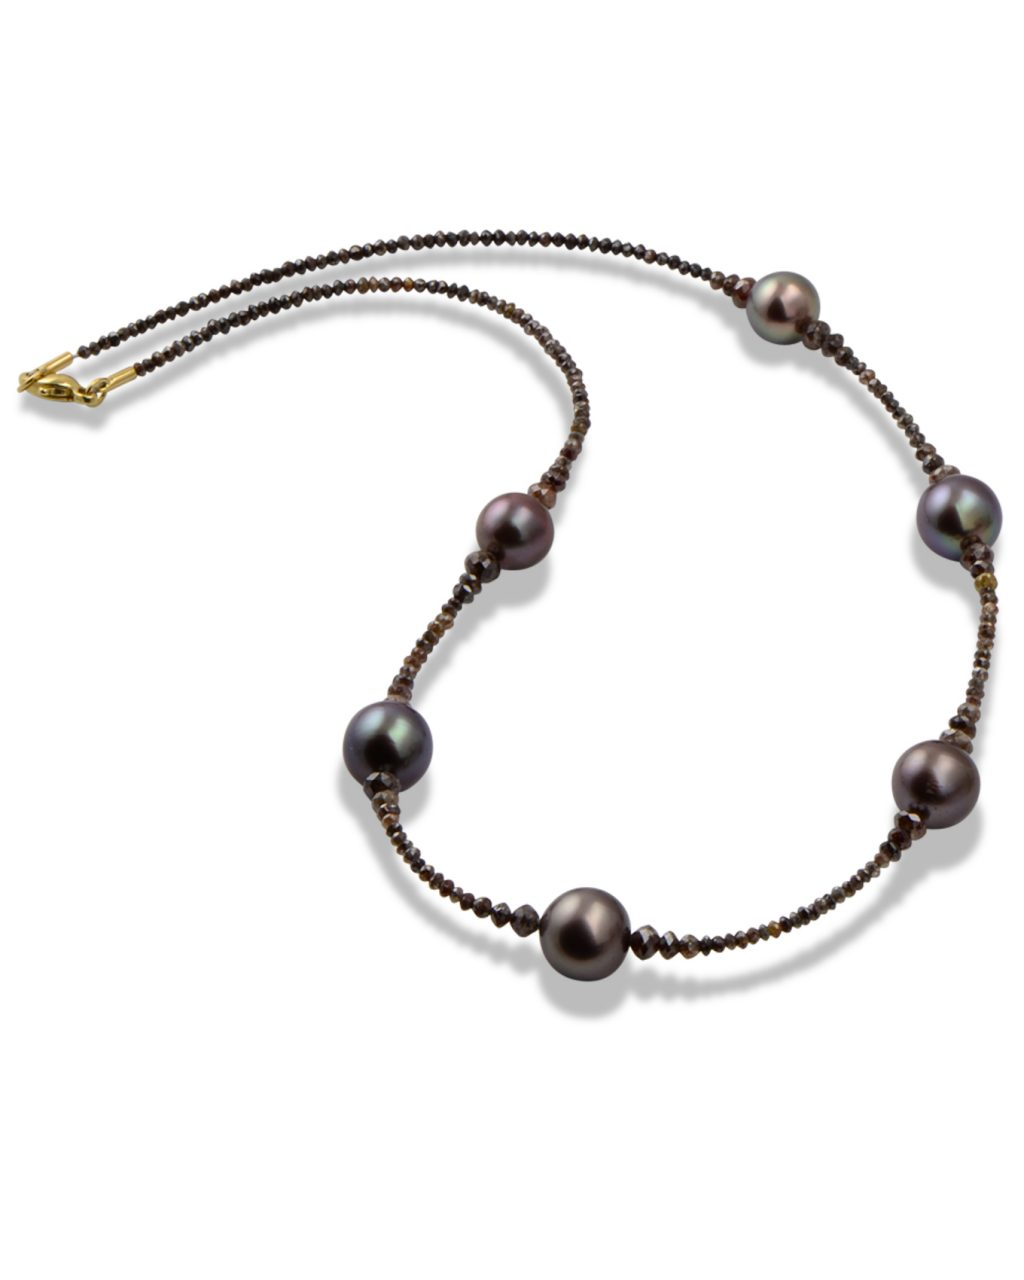 Tahitian pearl and brown diamond bead necklace.